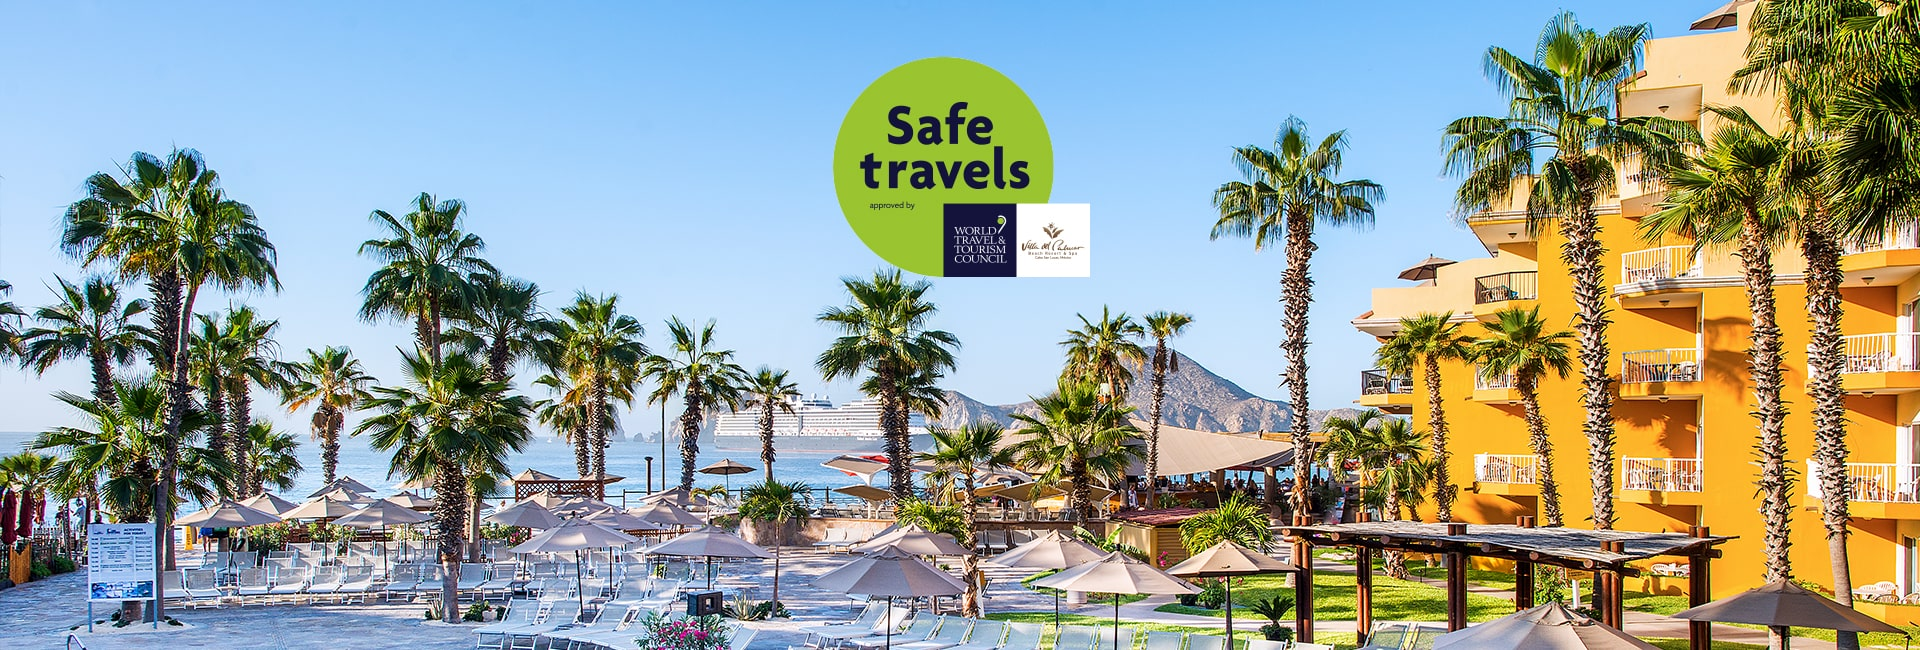 Villa del palmar cabo earns safe travels stamp from the wttc